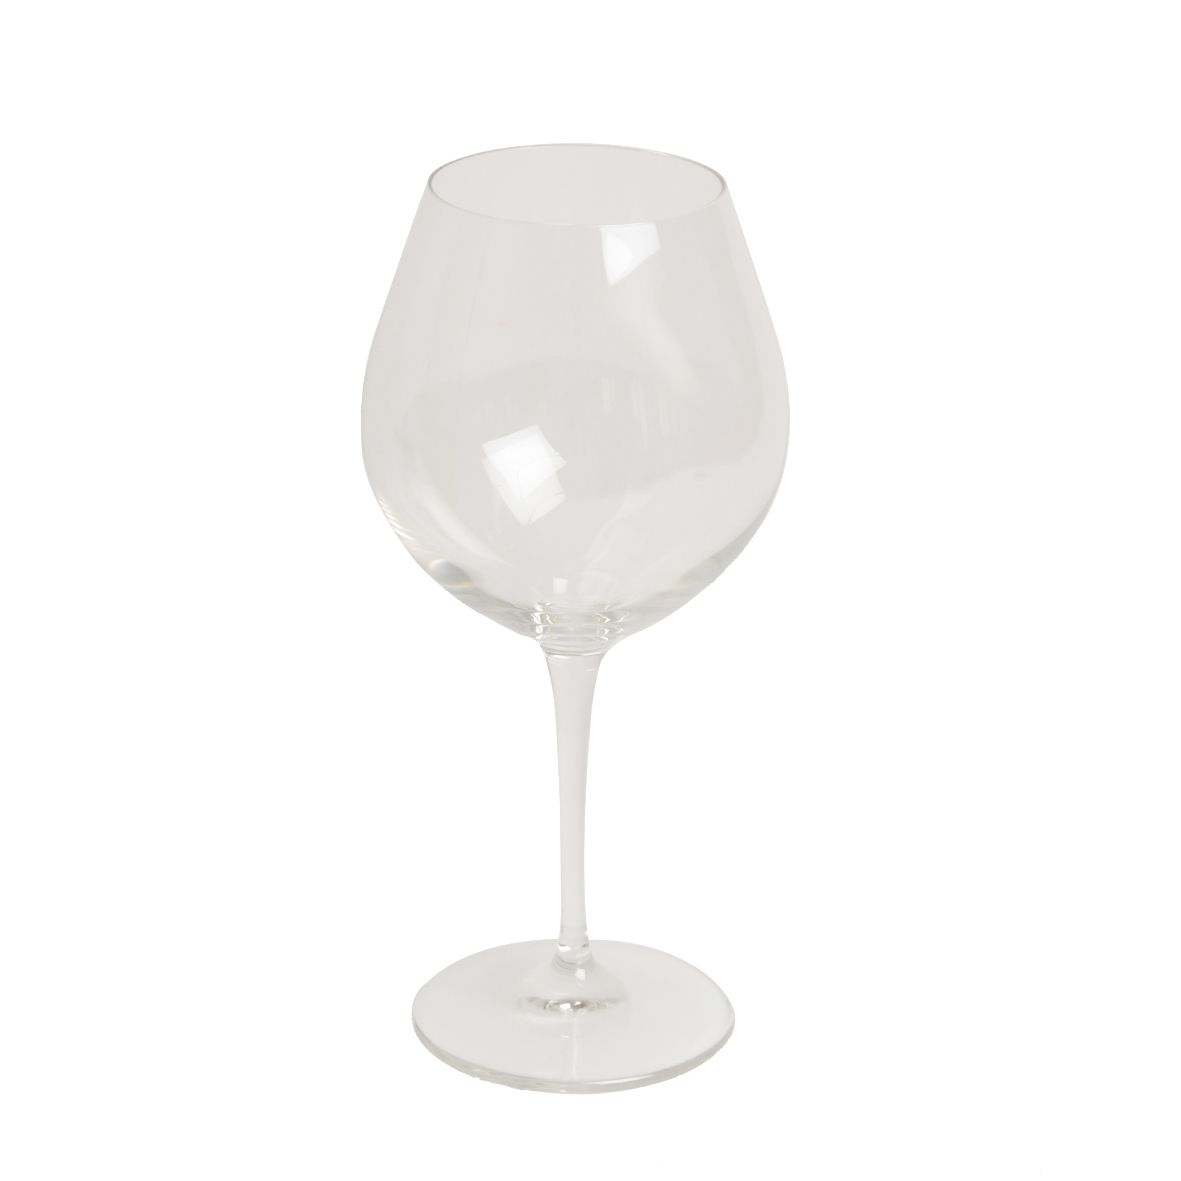 Verre à vin 'Crystal', grand